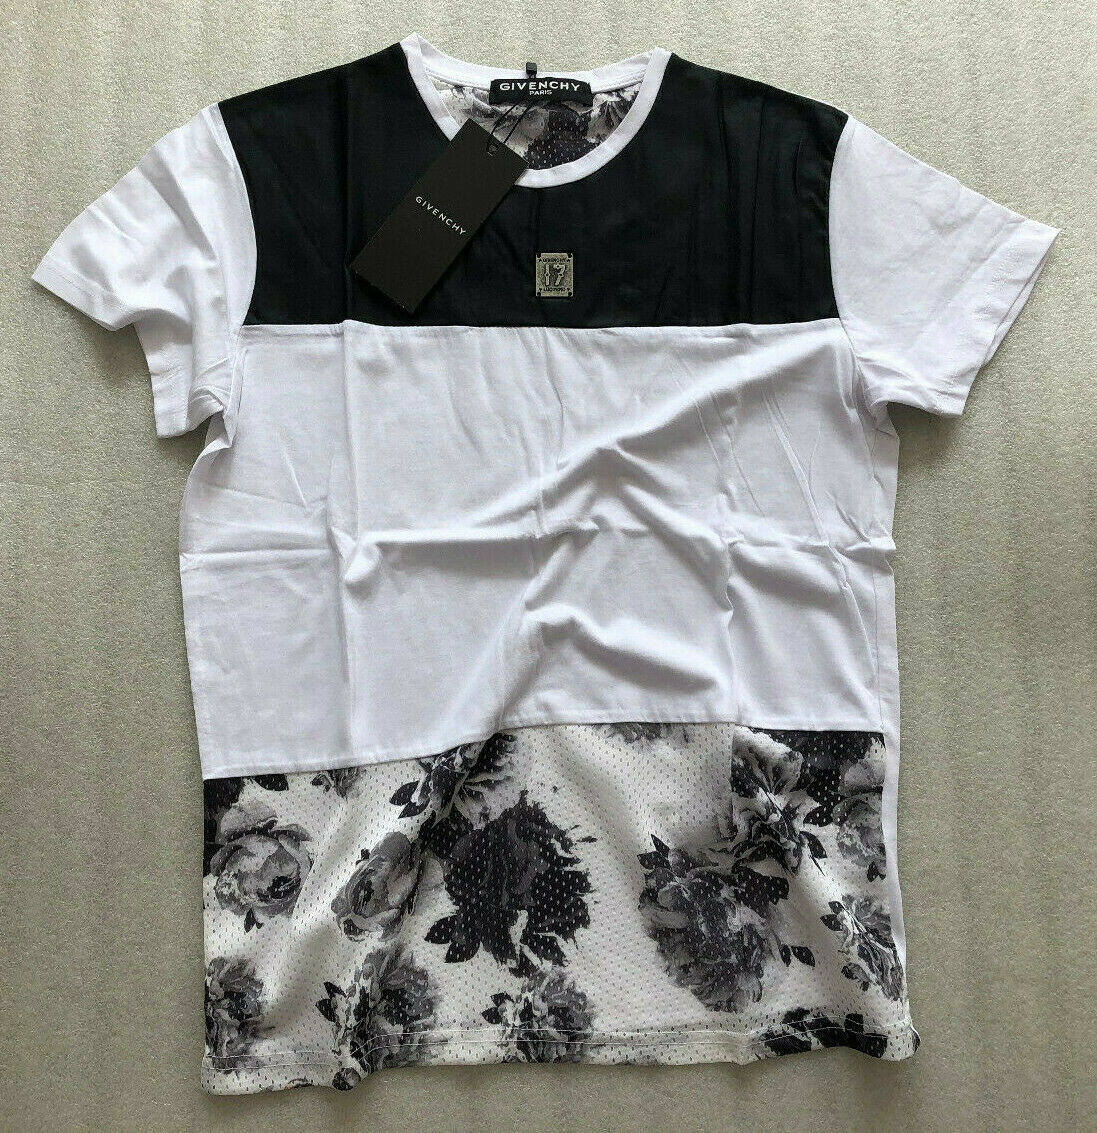 New Cool Givenchy  Men's T-Shirt Size S